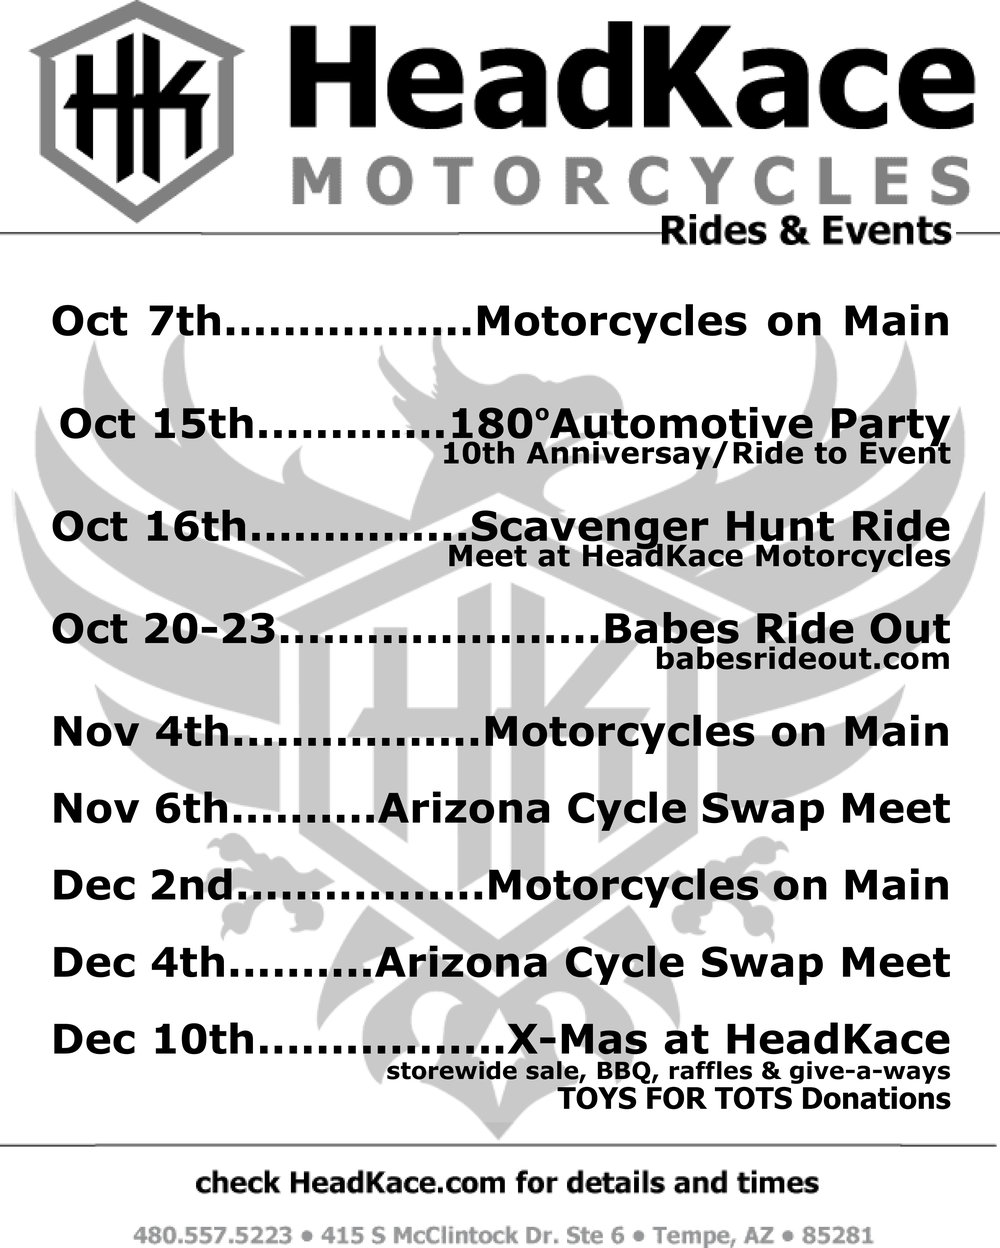 "MOTORCYCLES ON MAIN FRIDAY, OCT 7 • NOV 4TH • DEC 2ND Downtown Mesa 6-10pm Main Street & Robson in Downtown Mesa, 85281 ""THE FIRST FRIDAY OF EVERY MONTH BETWEEN SEPTEMBER AND JUNE 6-10PM IS BIKE NIGHT IN DOWNTOWN MESA! Join over 3,000 motorcycle enthusiasts on Main Street for a Sturgis-style event that attracts bike lovers from all over Arizona and beyond. The roads are closed to car traffic and open to bikes, riders and spectators for this family-friendly event. Despite the Light Rail, the event will remain on Main Street. The beer garden and live music will be located on North Macdonald while Main Street will be closed for riders and vendors. Motorcycles on Main is a shine and show event that offers live music on the main stage, beer gardens, vendors, food and a rockin' good time! The event is also supported by our wonderful Downtown restaurants who stay open late during this event; Queen's Pizzeria, Mangos Mexican Café, Margaritas Grille, il Vinaio, Nunthaporn's Thai Cuisine and Republica Empanada. The event is back on Main Street. For your safety, please park along the sidewalks and away from the center of the street along the Light Rail guideway."" 180 degrees AUTOMOTIVE turns 10 party OCTOBER 15TH 6pm-10pm 545 W Mariposa St, Phoenix, Arizona 85013 Time flies when you're having fun! We can't believe it's been 10 years since we started on a mission to change the way people feel about auto repair, to bring more women into the industry, and prove that auto repair can look feel and act differently then it traditionally has.  We couldn't have done it without every one of you, supporting us, trusting us, and being a part of our family. And so….. we are throwing a huge party in YOUR honor! • Enjoy some great food • Listen to live music from local singer & musician Shawn Johnson • Partake in an adult beverage or two • Enjoy new art from local artist Marisa Hall Valdez and see the new mural she did for us • Take home a goody bag filled with fun stuff from local vendors • Bid on one or more of the great auction items But most importantly…. Have FUN! scavenger hunt ride SUNDAY, OCT 16TH MEET AT HEADKACE HEADQUARTERS AT 10AM 10am-1pm You're invited to our Annual Scavenger Hunt Ride Sunday, October 16th at 10am! Get your map at HeadKace Headquarters in Tempe & moto to about 5 local destinations to hunt for treasures & raffle tickets to win Great prizes raffled off at the end! Prizes include an HK Helmet giftcard, Roland Sands gear, DRAG gear, Epich Eyewear, Speed and Strength Apparel, Black Brand Gear, Tucker Rocky giftcards, and more swag from our Sponsors!!!"